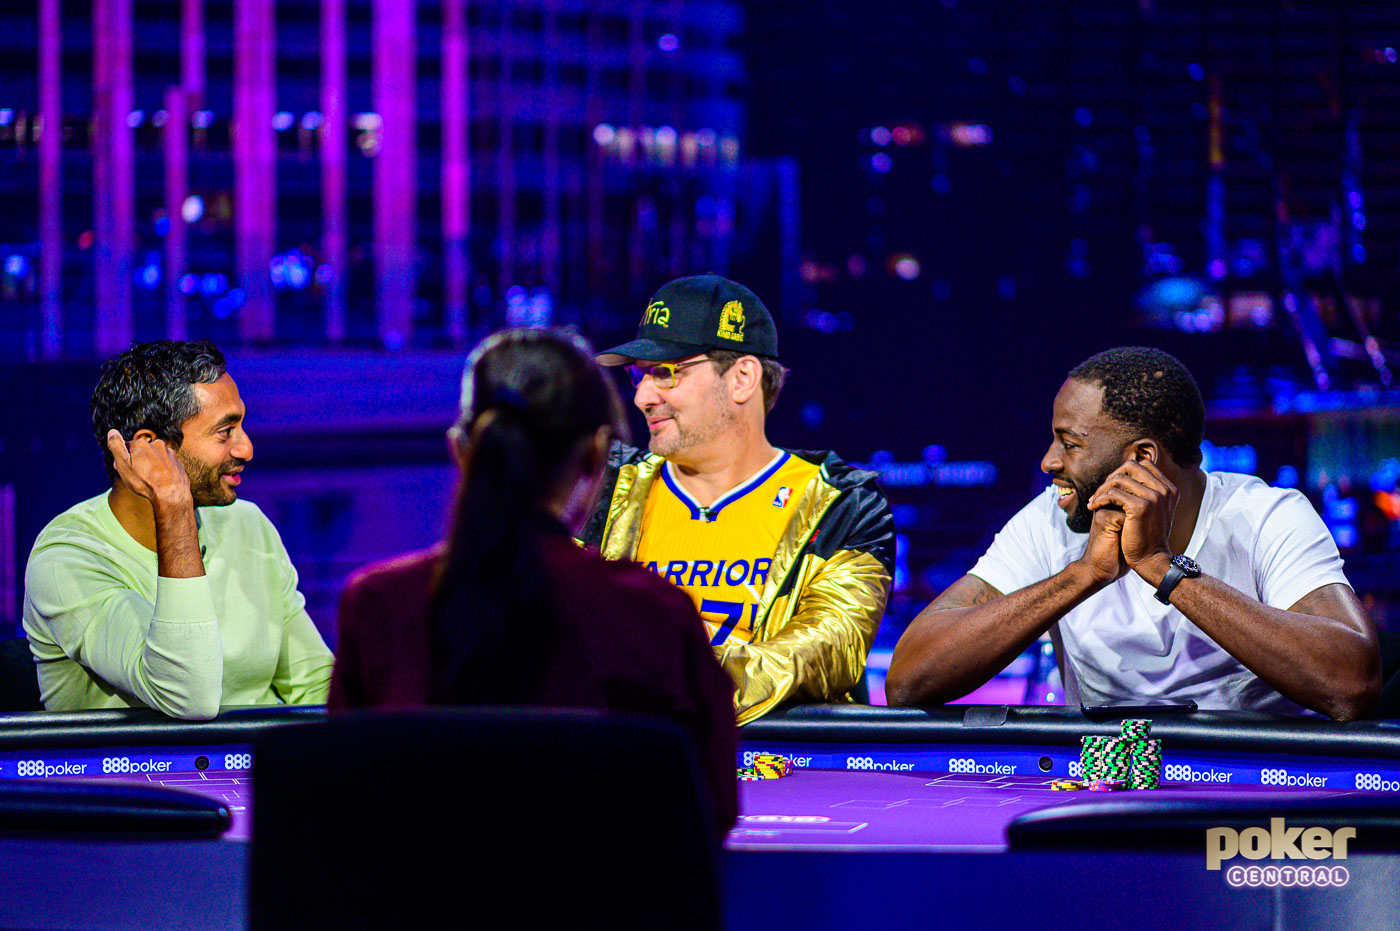 Chamath Palihapitiya, Phil Hellmuth, and Draymond Green having a blast on Poker After Dark.